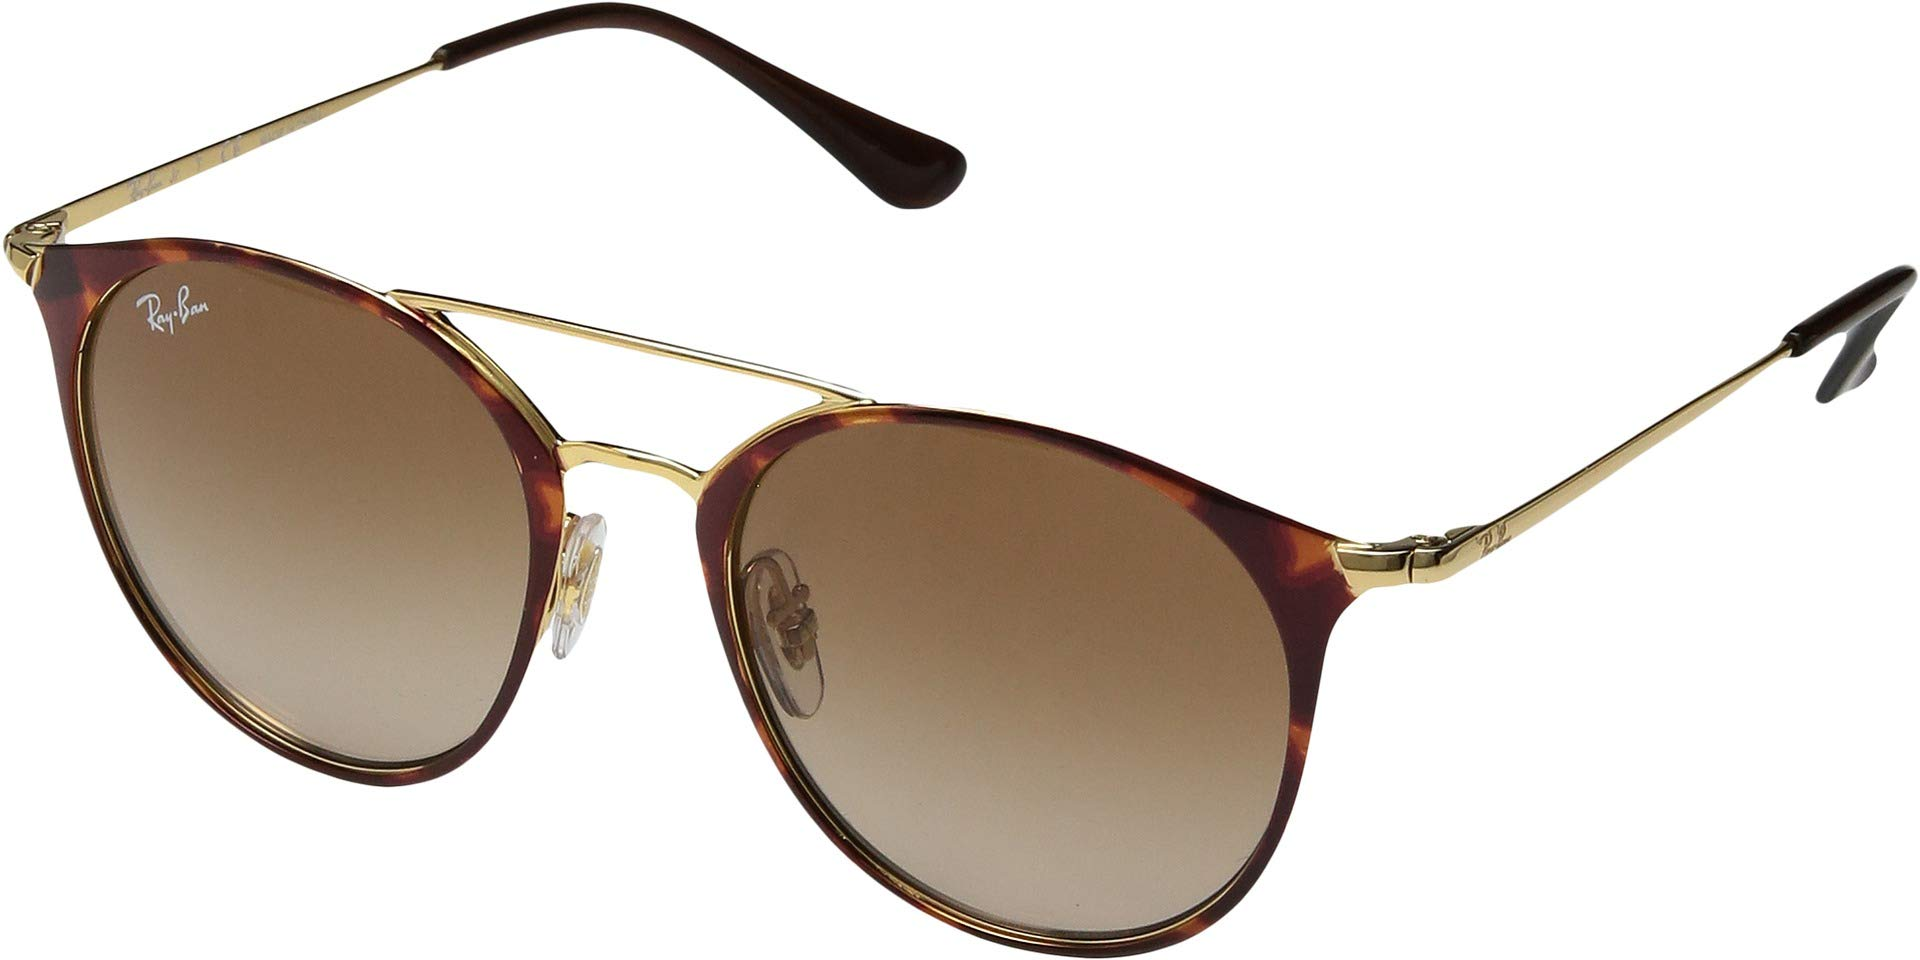 RAY-BAN JUNIOR Kids' RJ9545S Round Kids Sunglasses, Gold On Top Havana/Brown Gradient, 47 mm by RAY-BAN JUNIOR